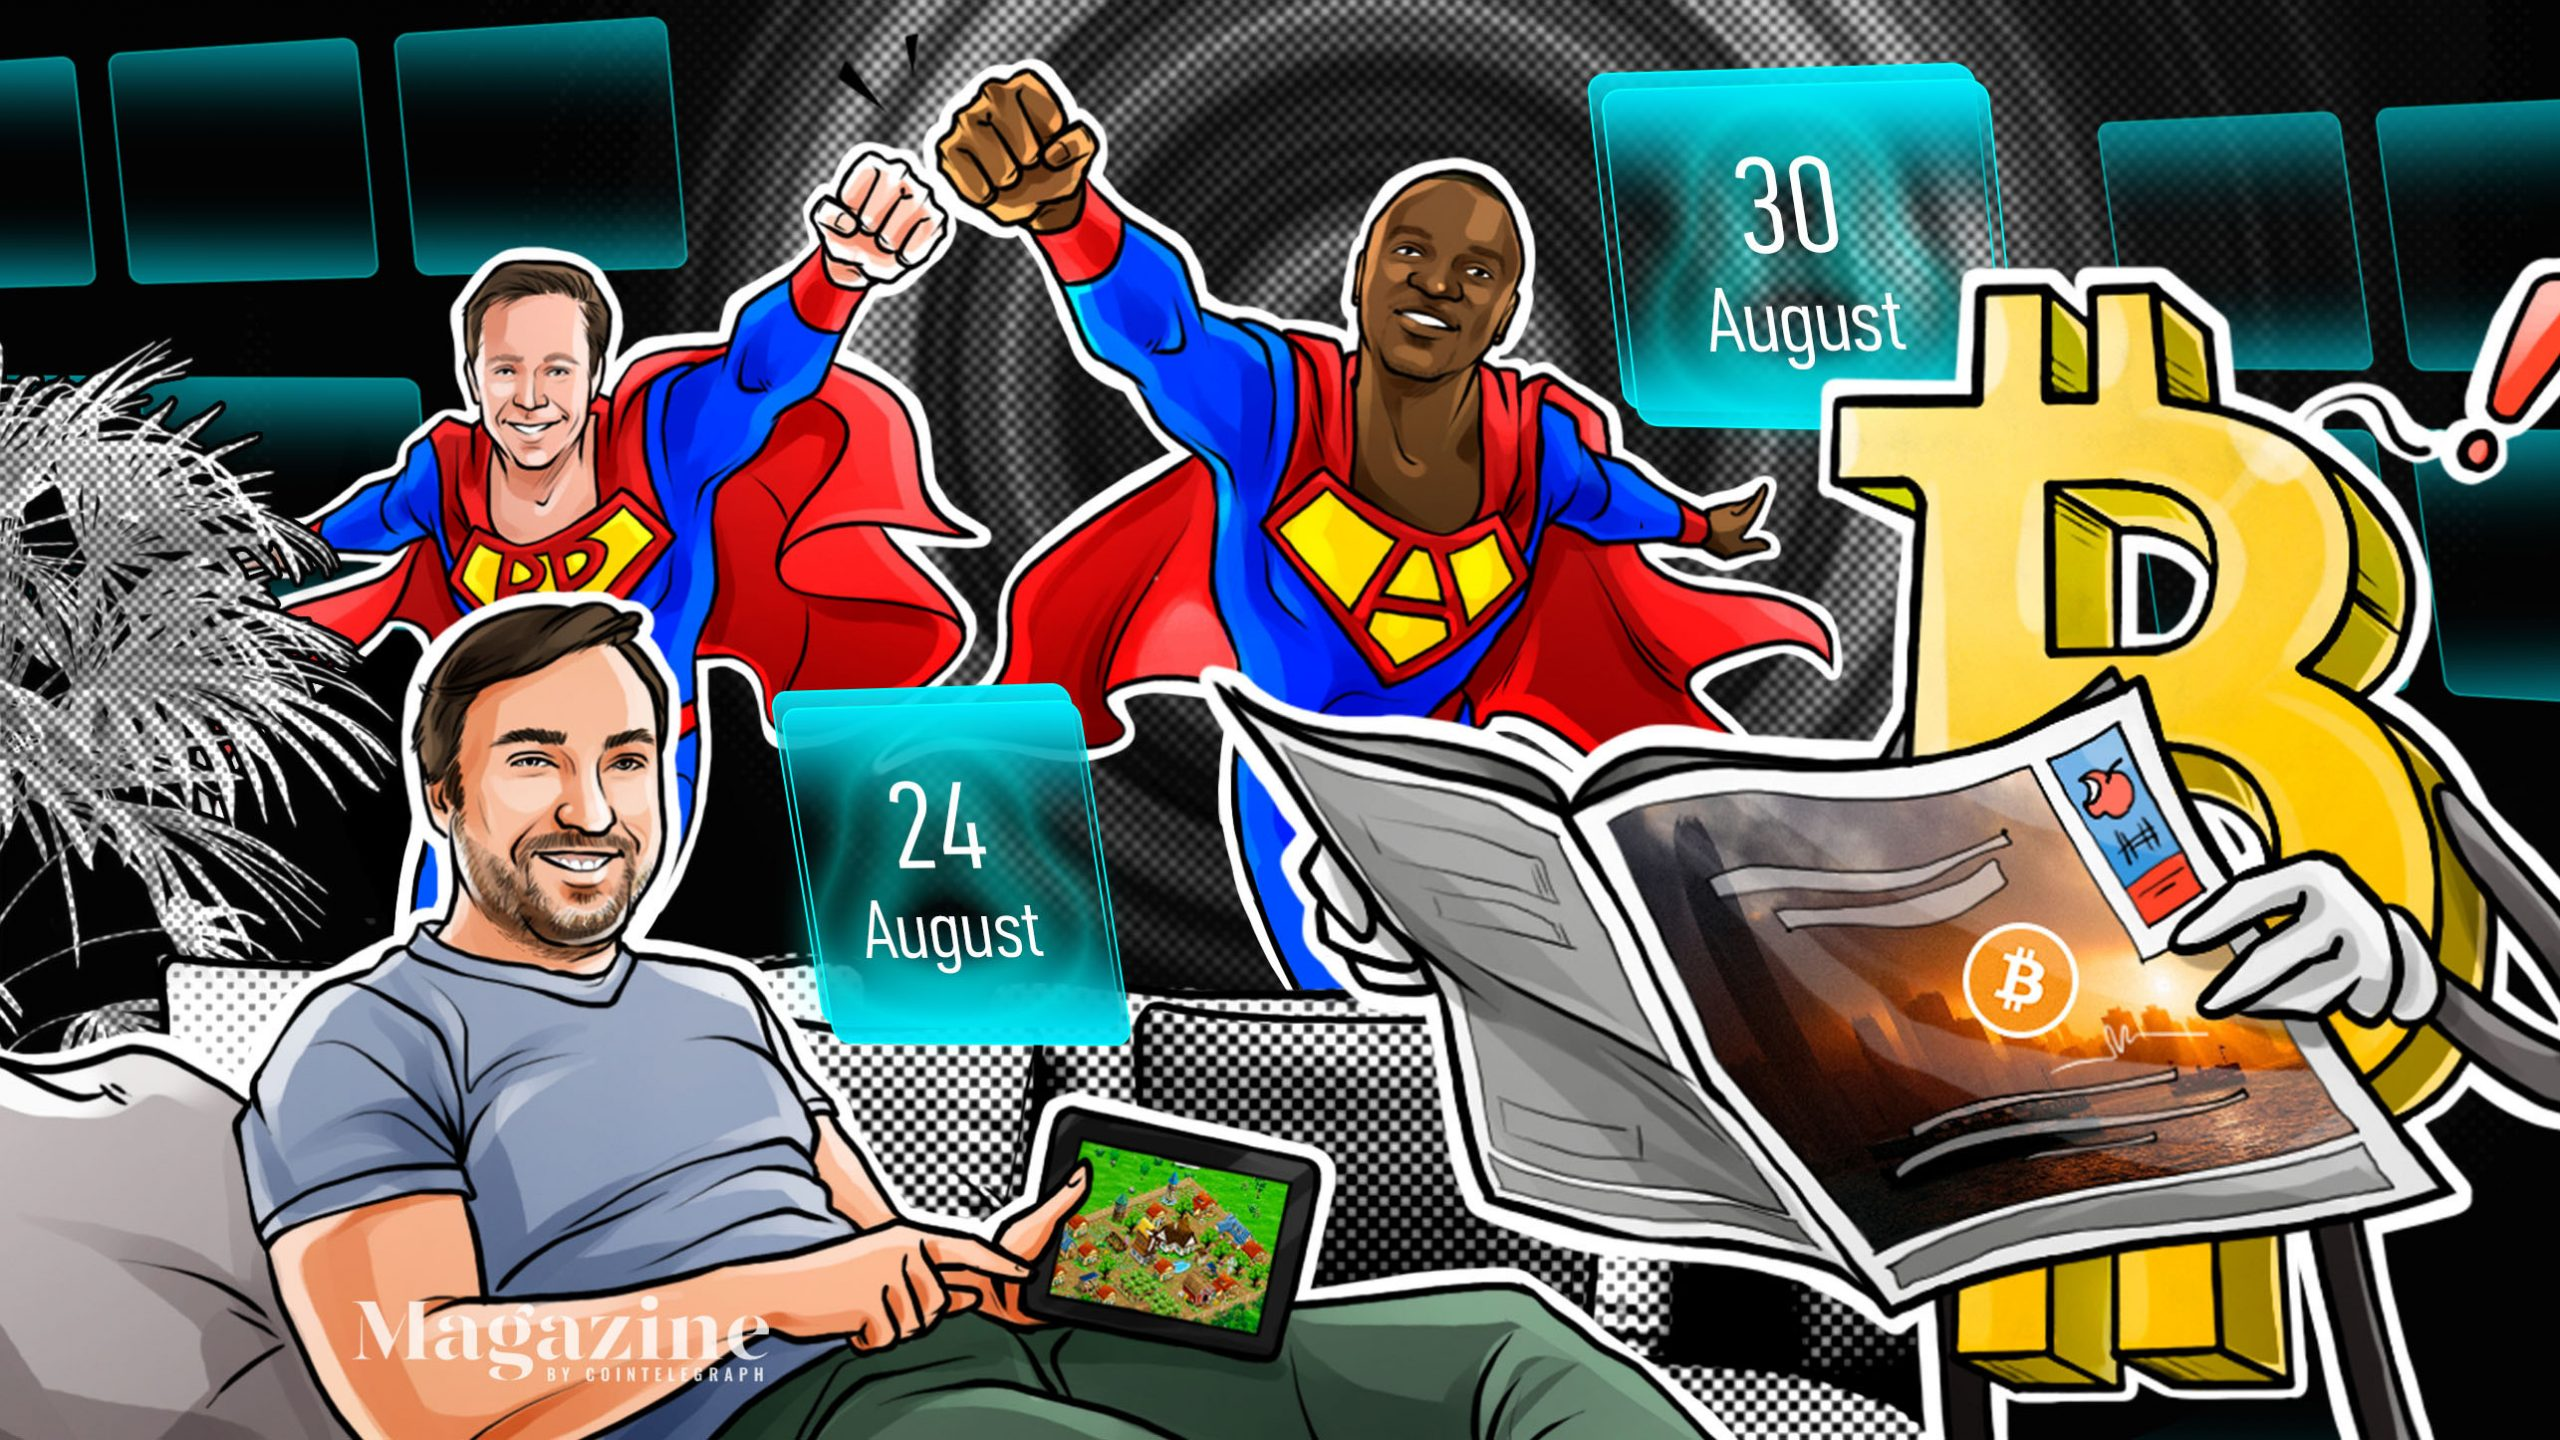 YFI surges to $38K, BTC comeback predictions, Ryanair CEO's fury: Hodler's Digest, Aug. 24–30